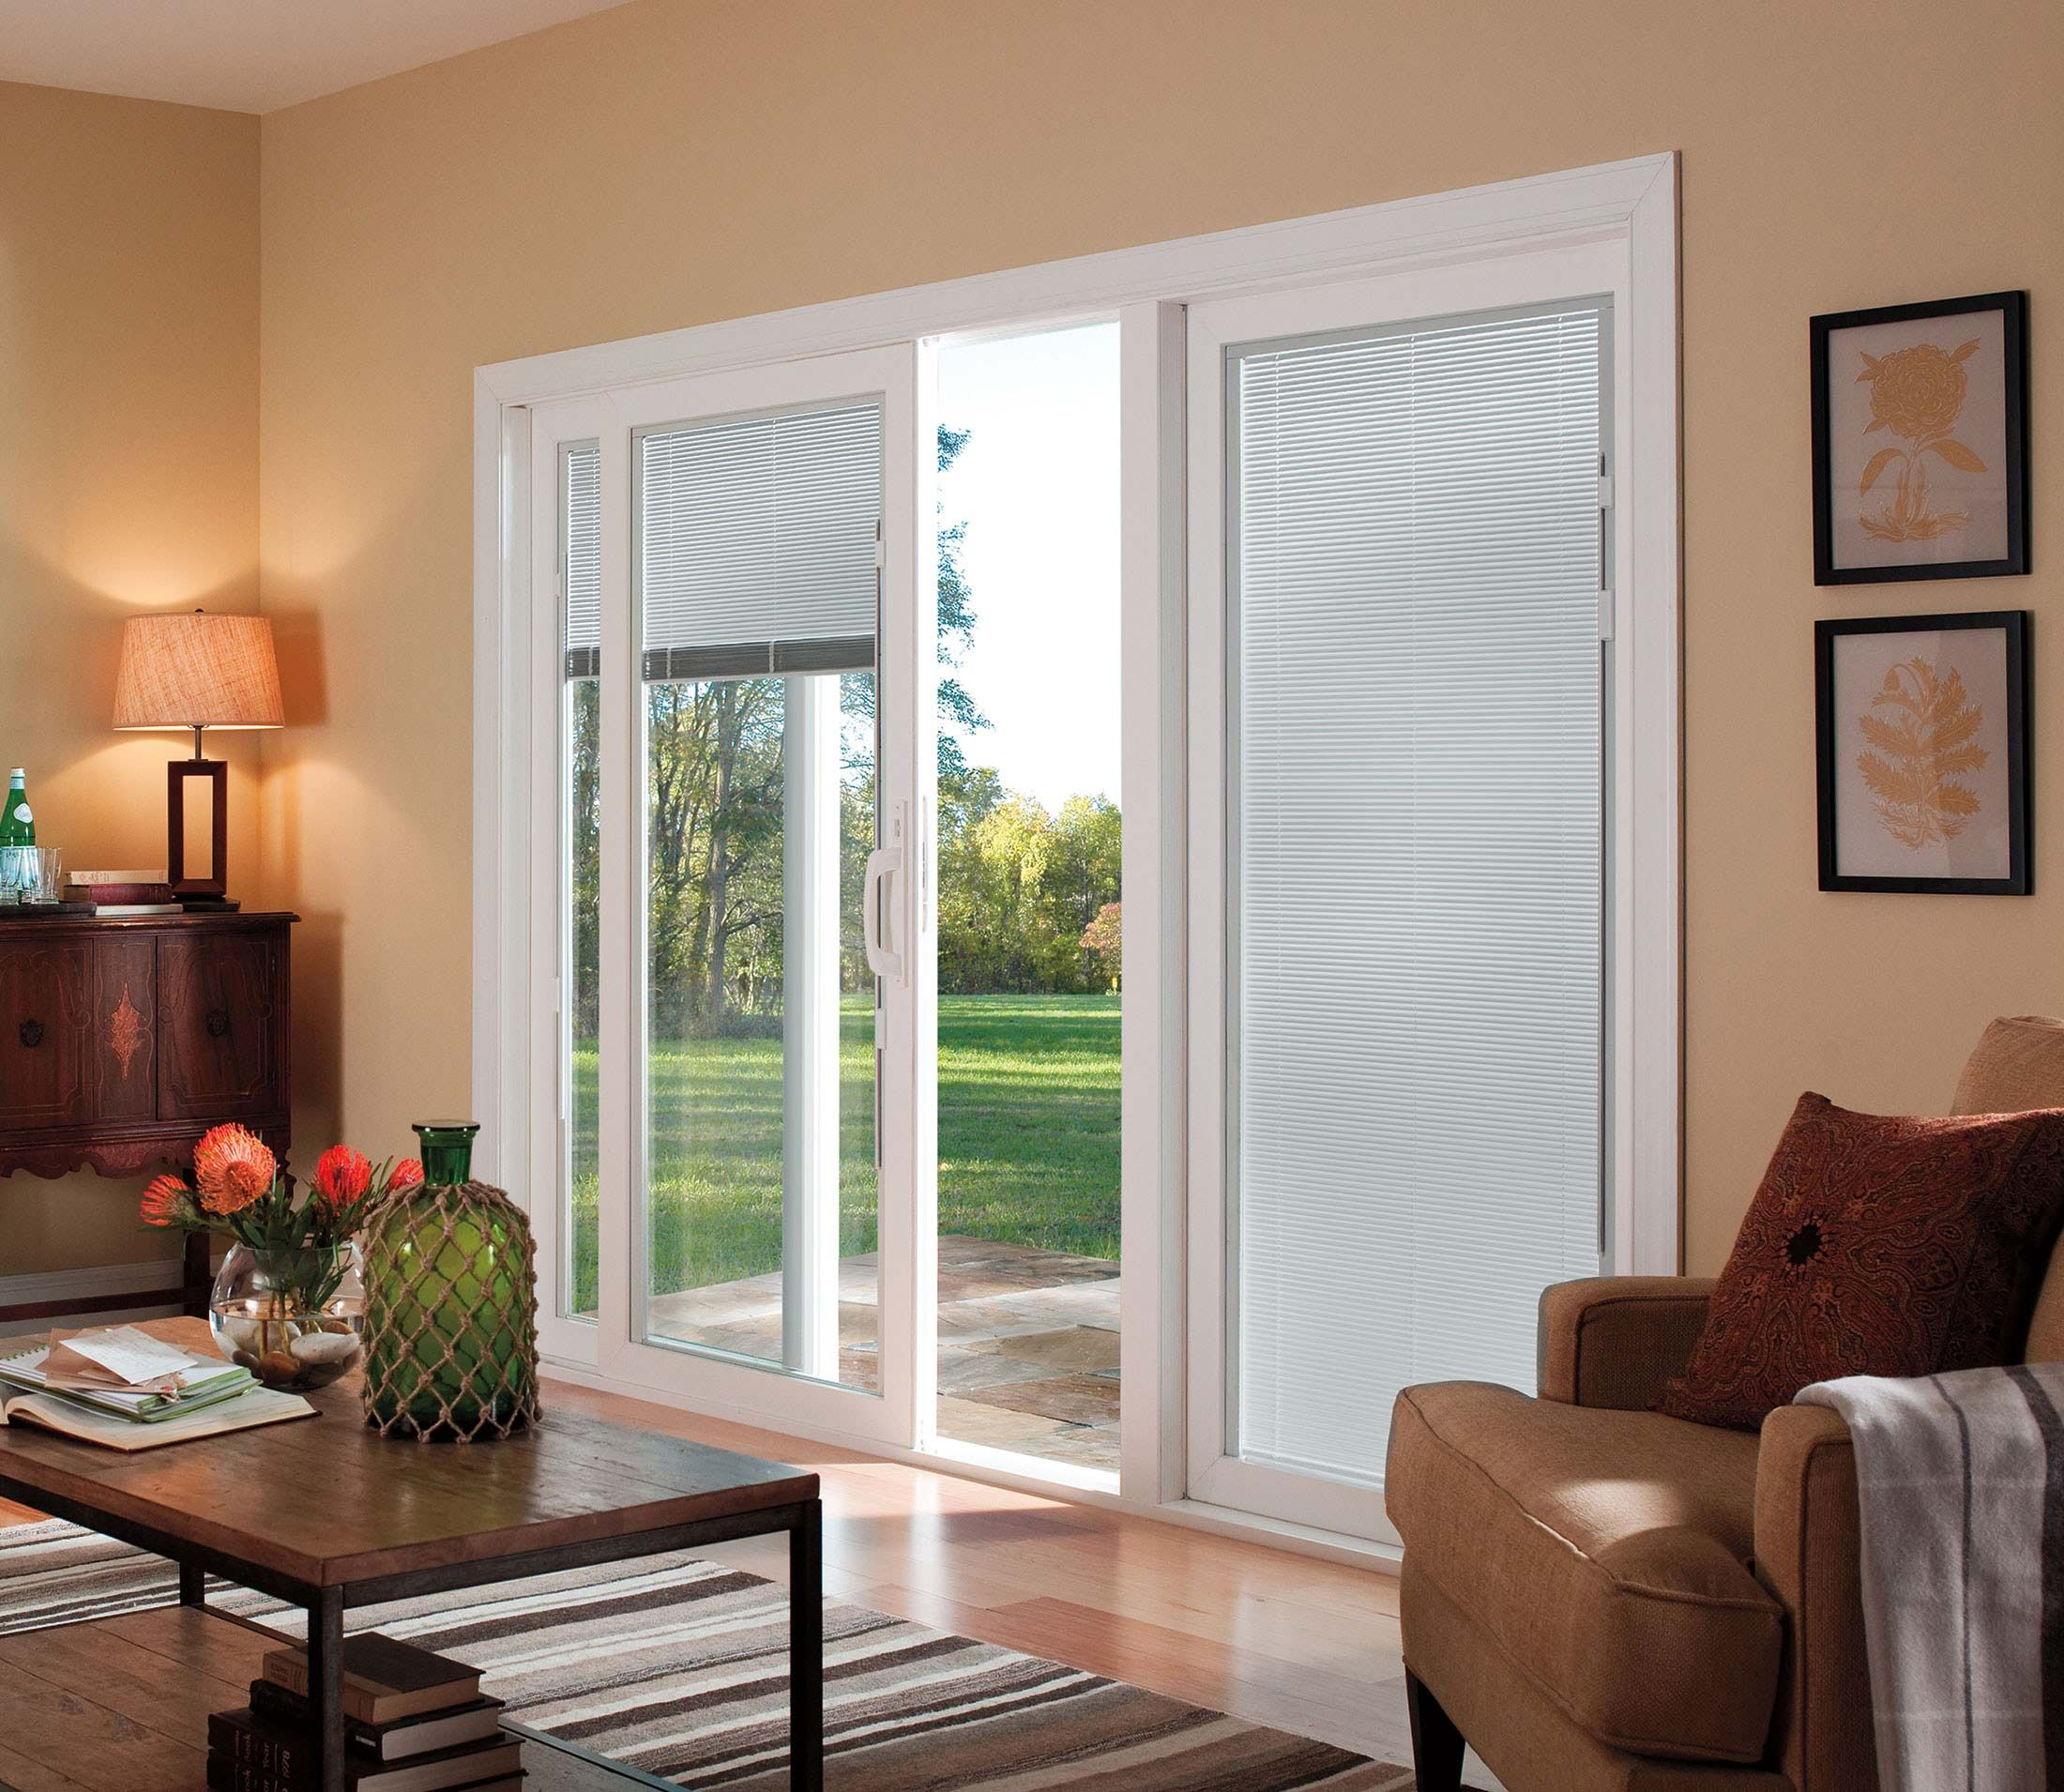 Pella 350 series sliding patio door pella vinyl triple pane pella 350 series sliding glass patio doors pella planetlyrics Images